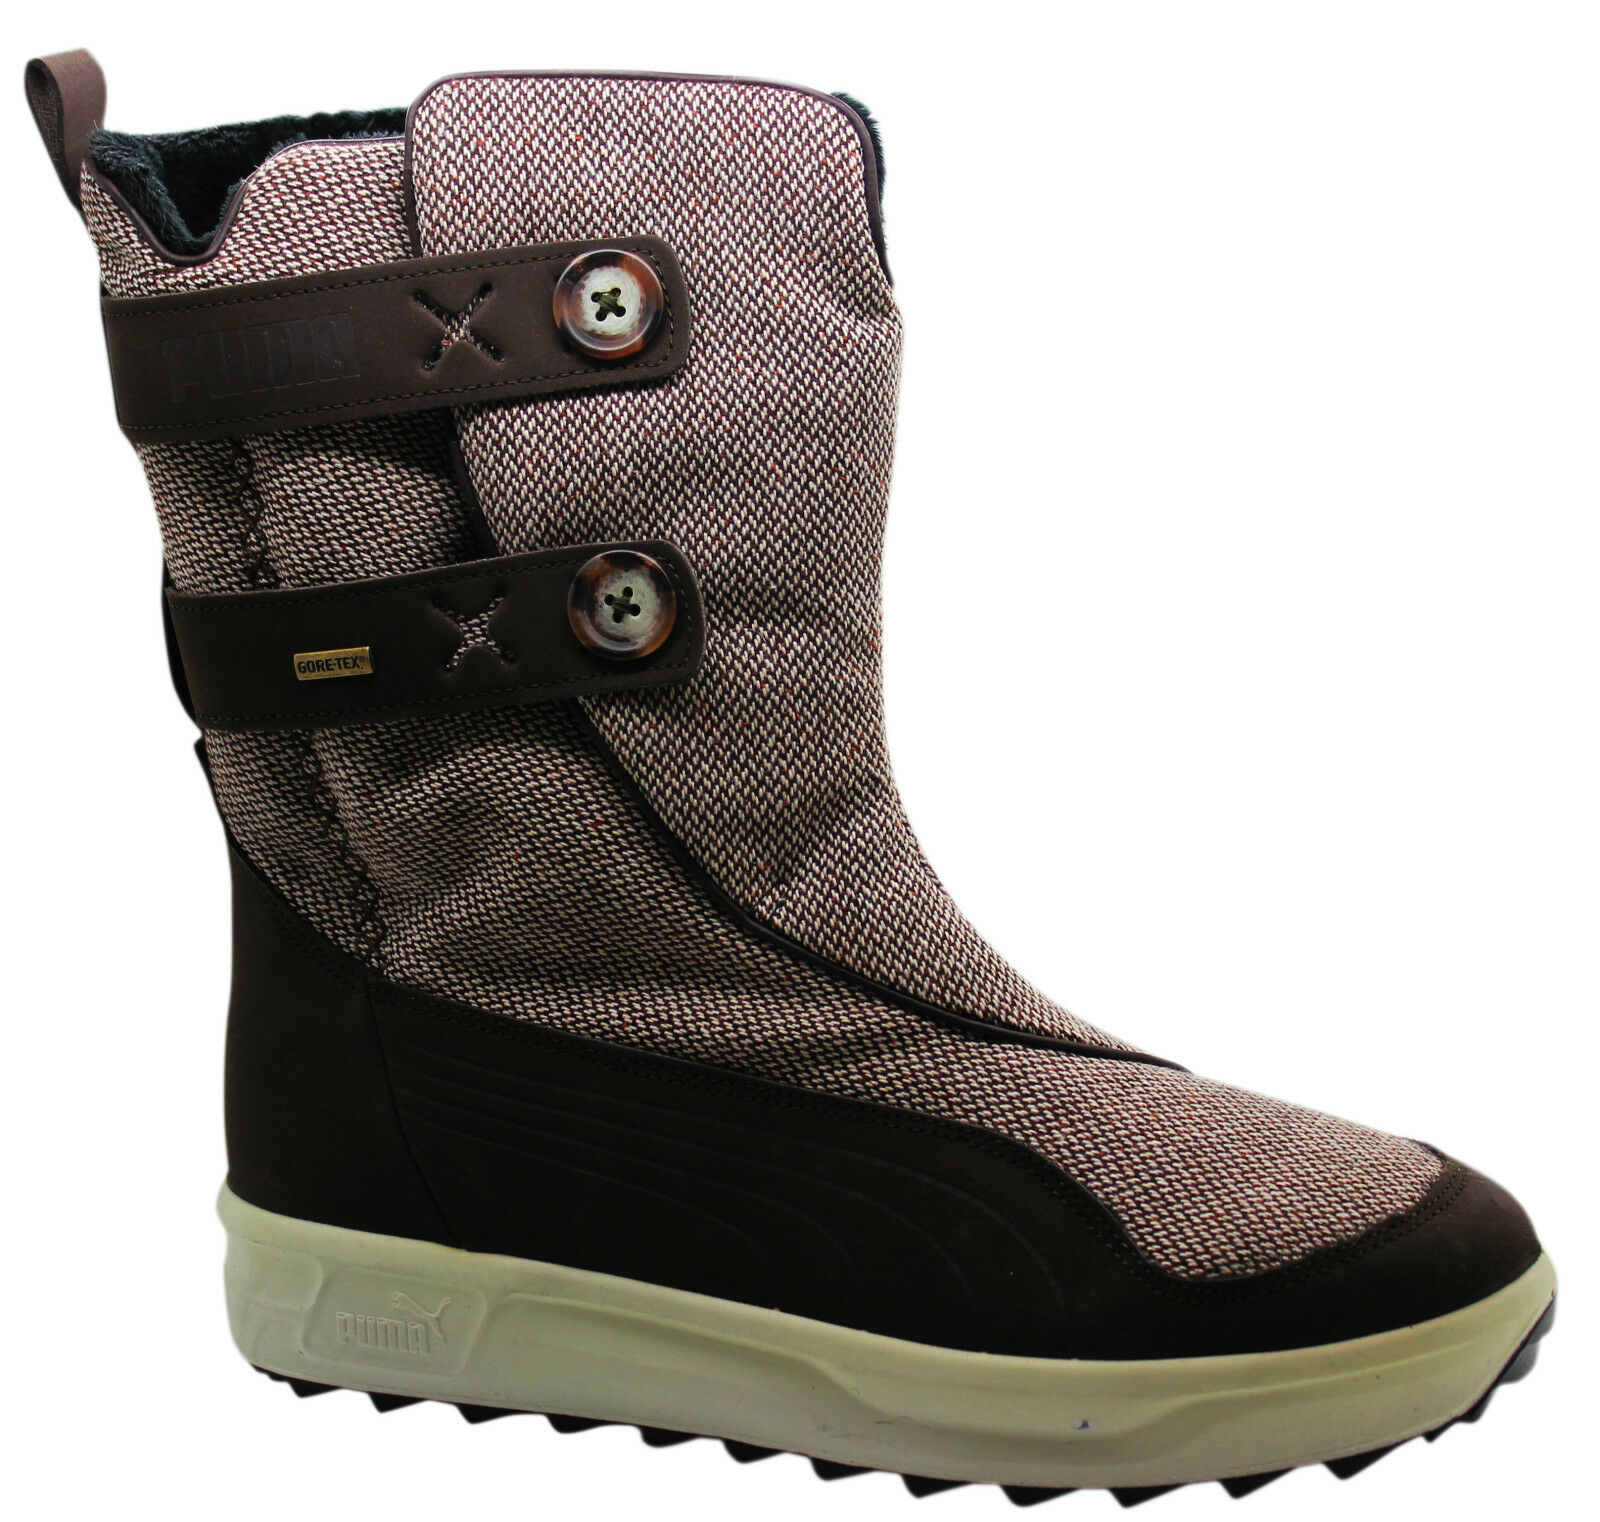 Puma Maddalena Womens Boots Gore-Tex Brown Leather 301747 02 D106